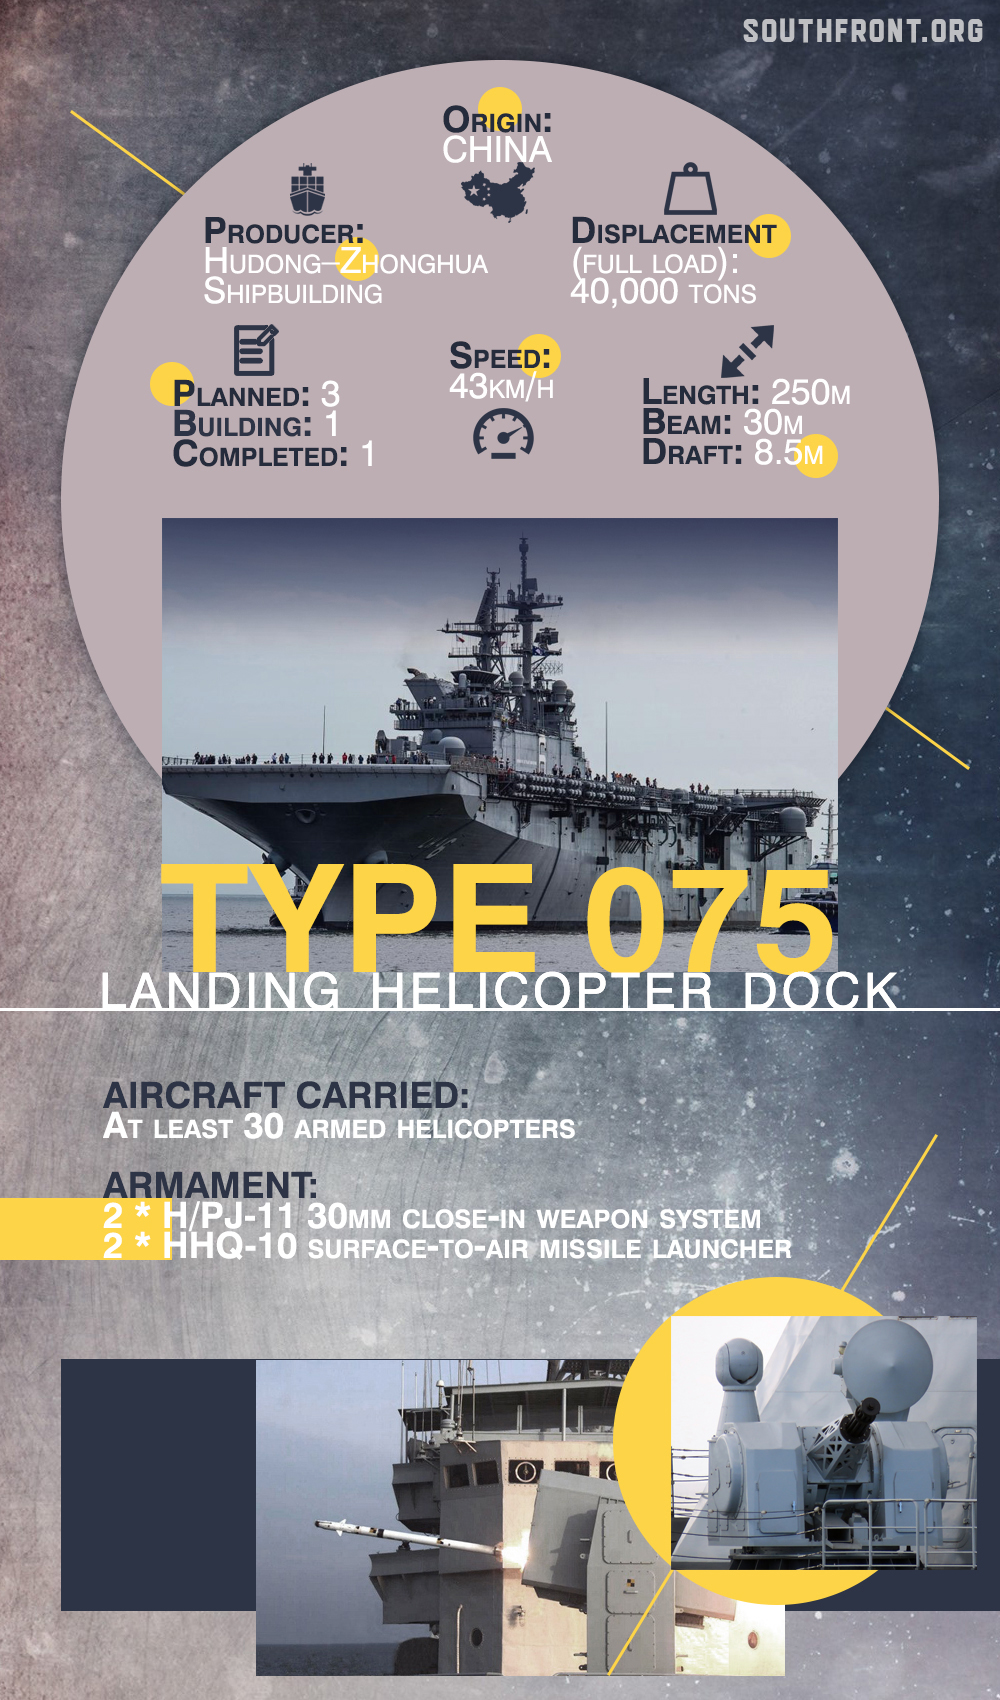 China Launches Its Second Type 075 Landing Helicopter Dock Just 6 Months After First